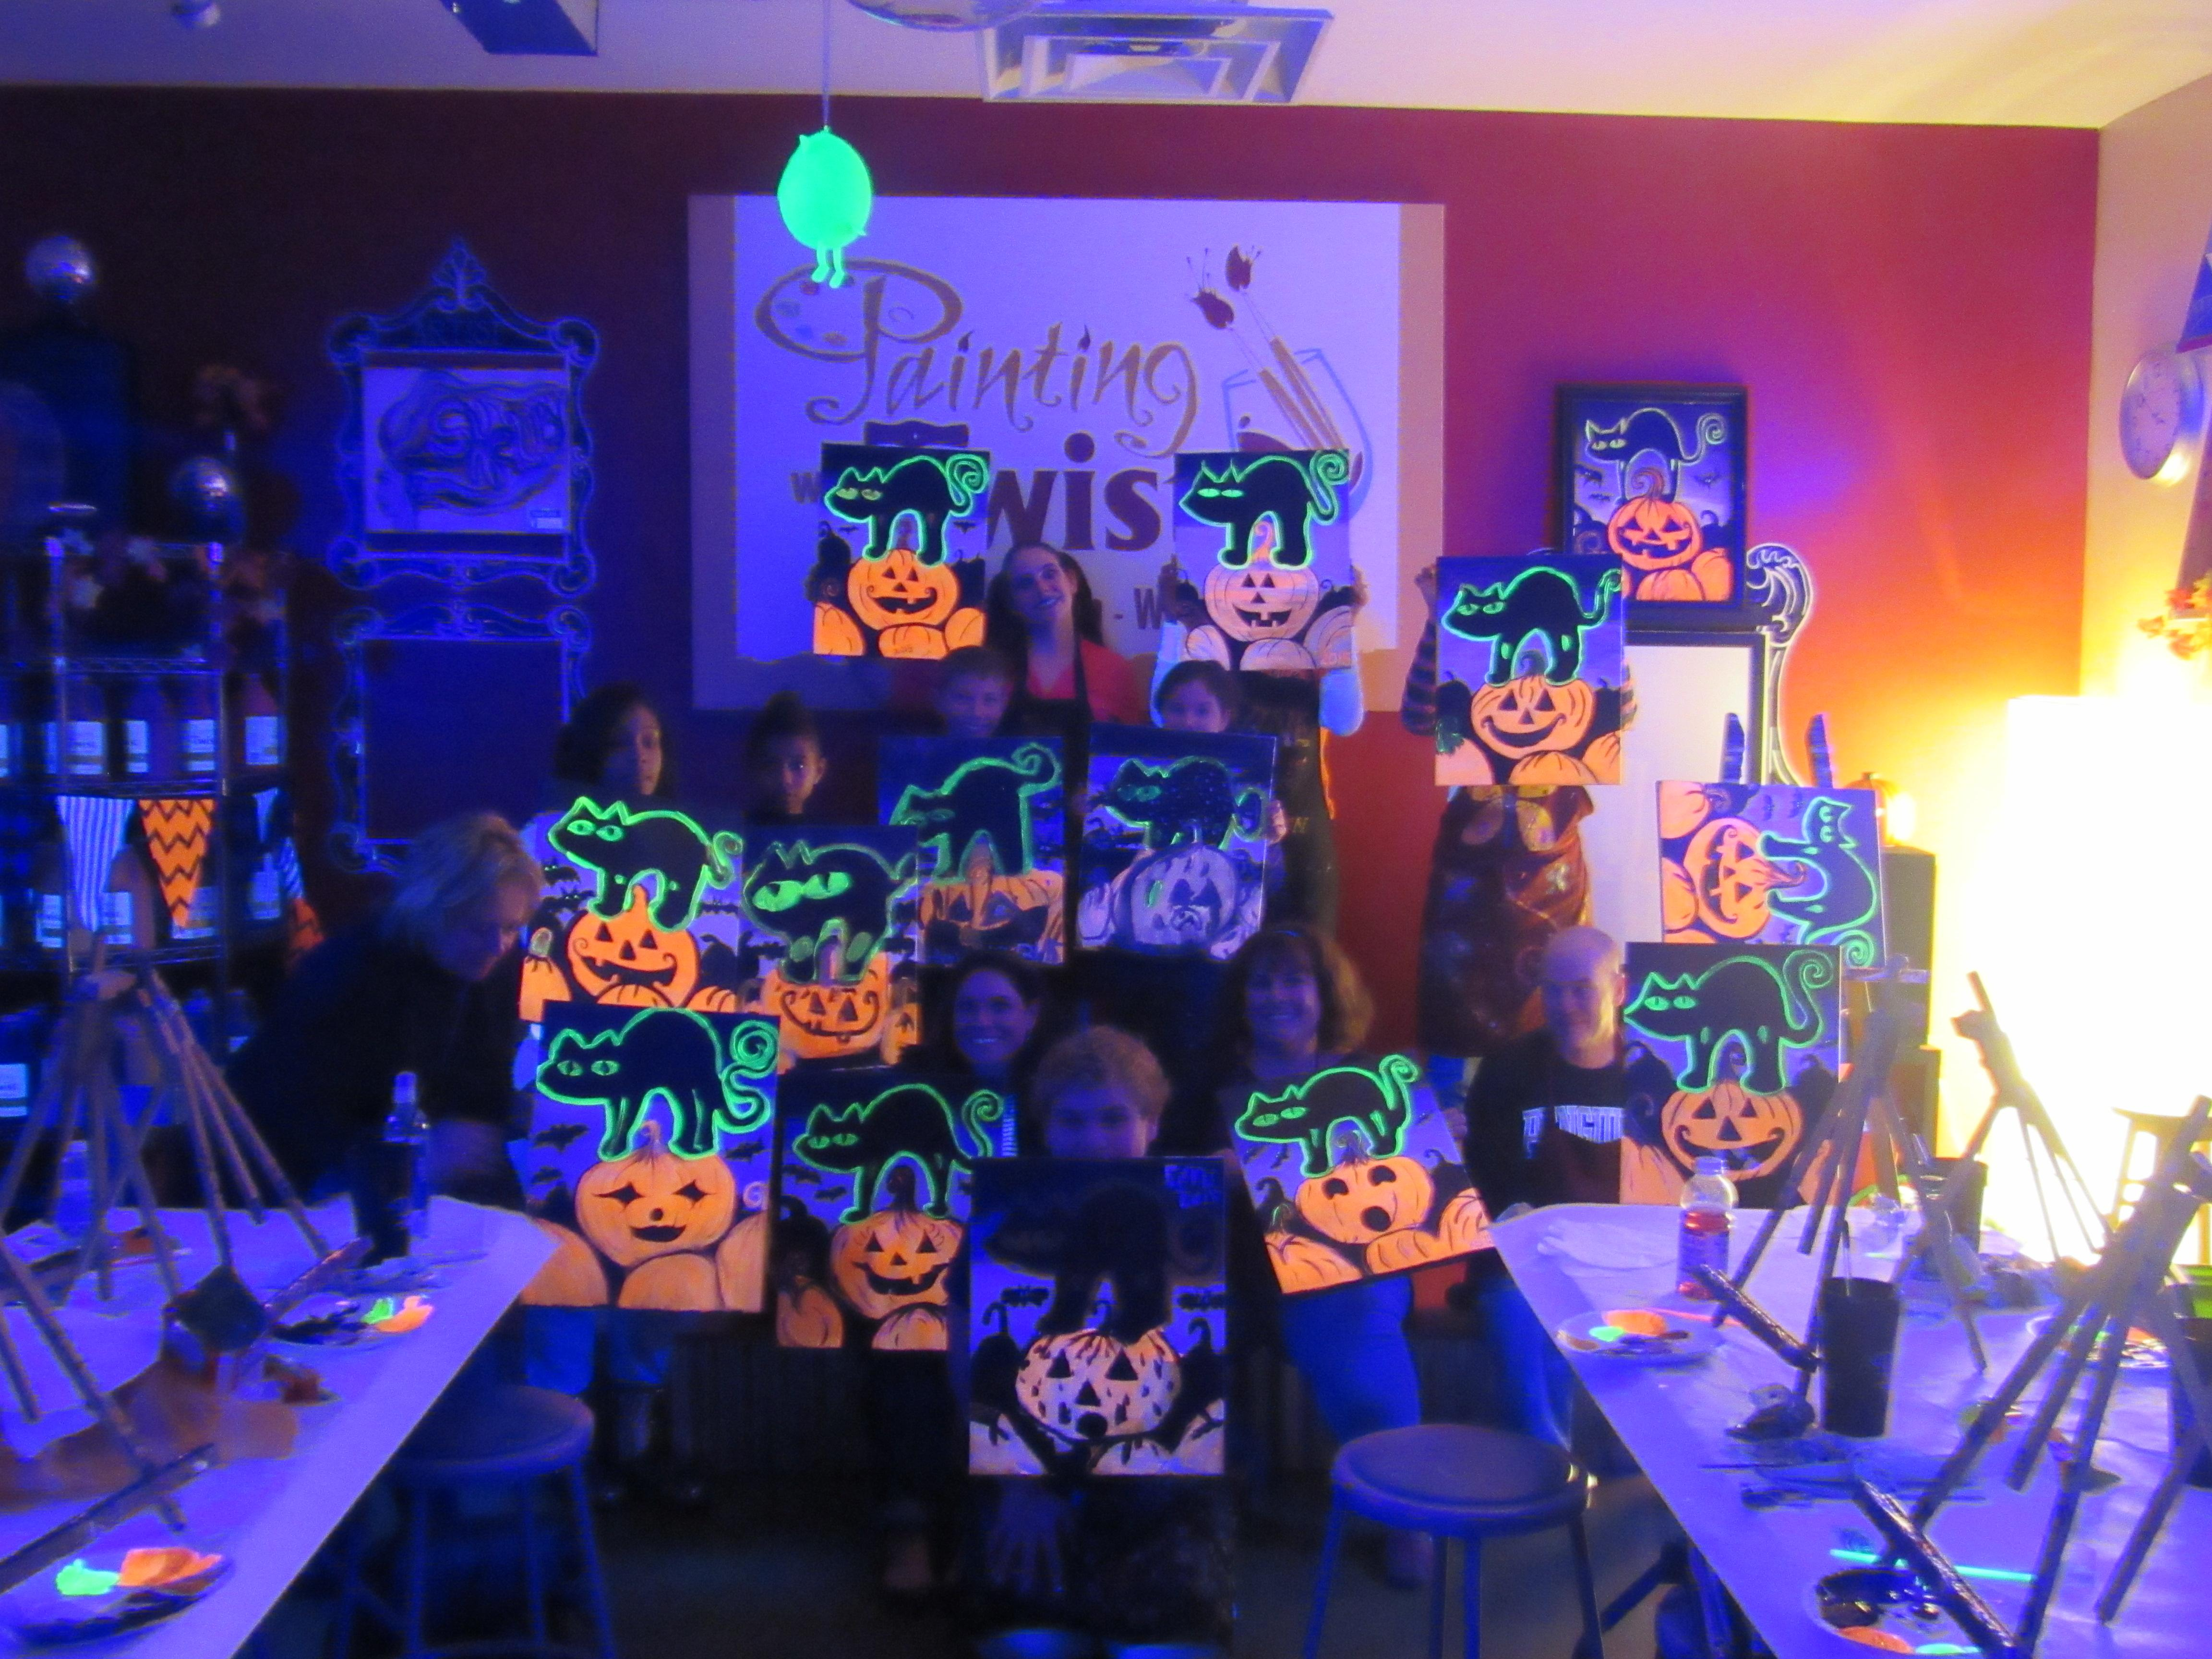 Painting with a twist at 5994 steubenville pike robinson for Painting with a twist arizona